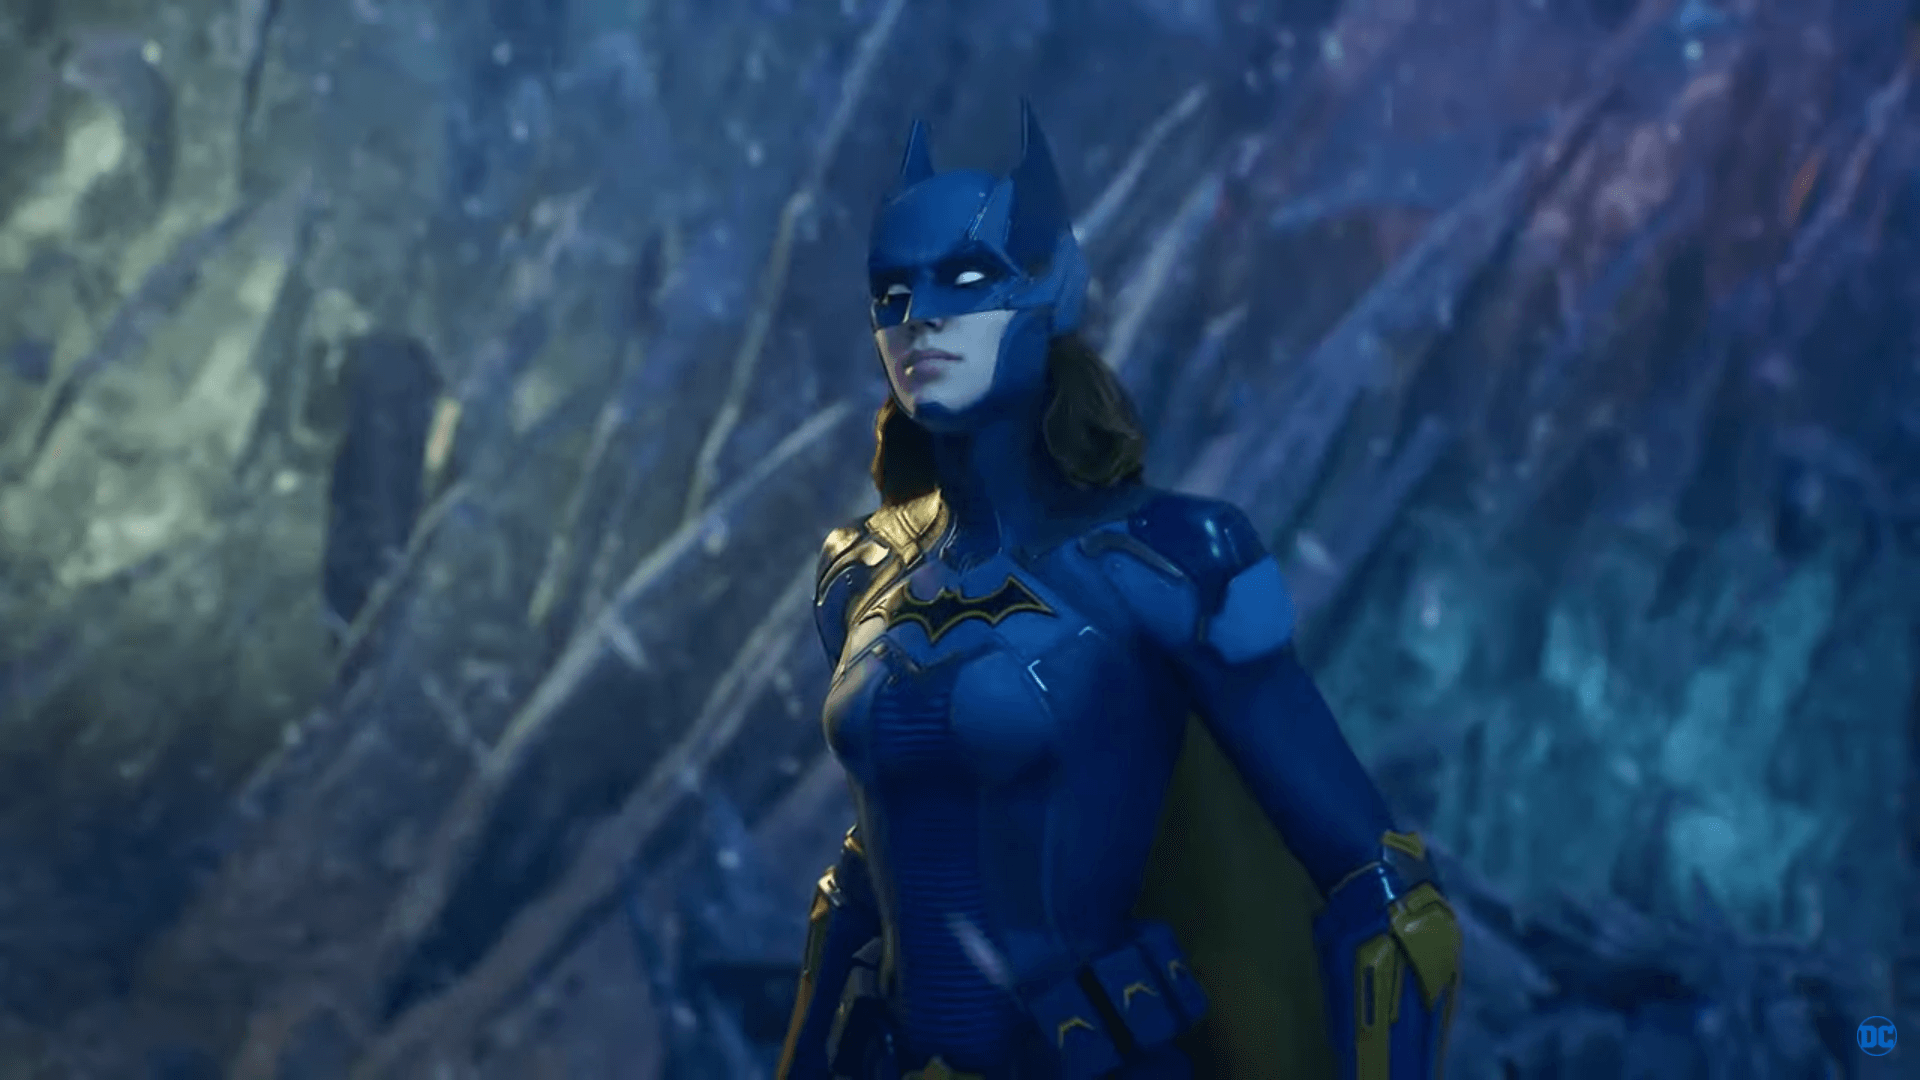 Gotham Knights Trailer and Gameplay Footage Shown at DC FanDome